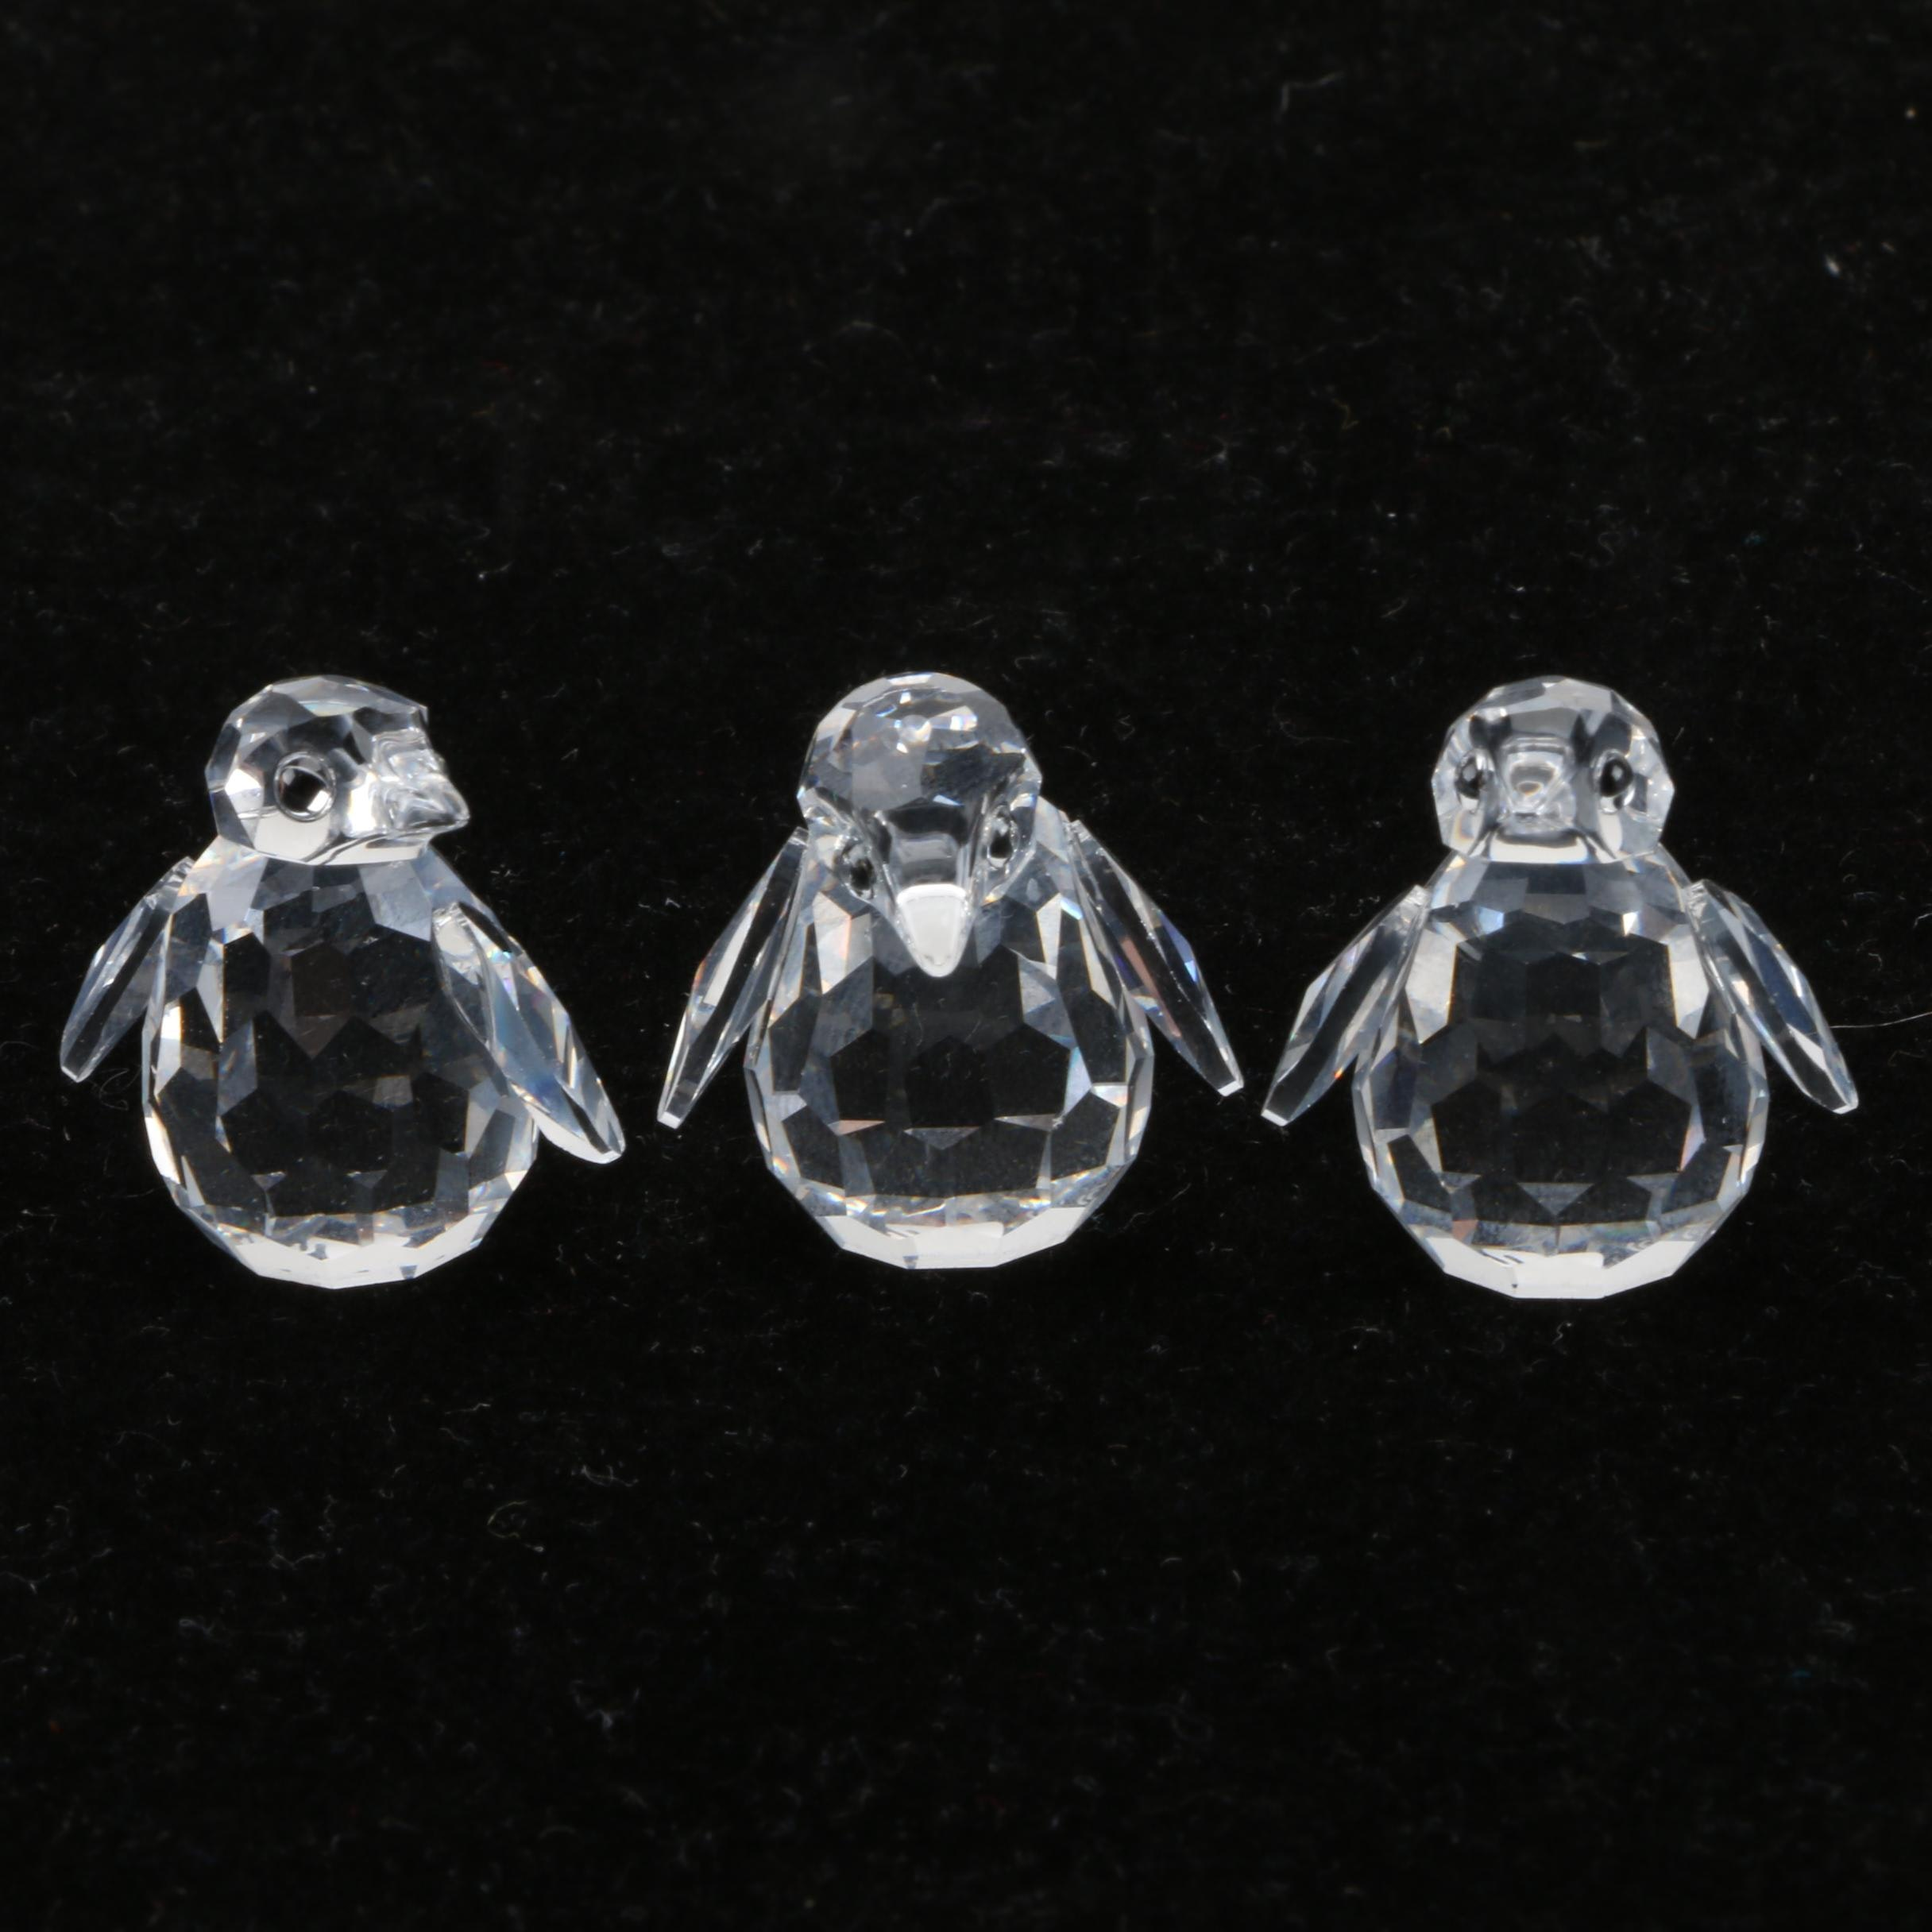 Swarovski Crystal Penguin Figurines